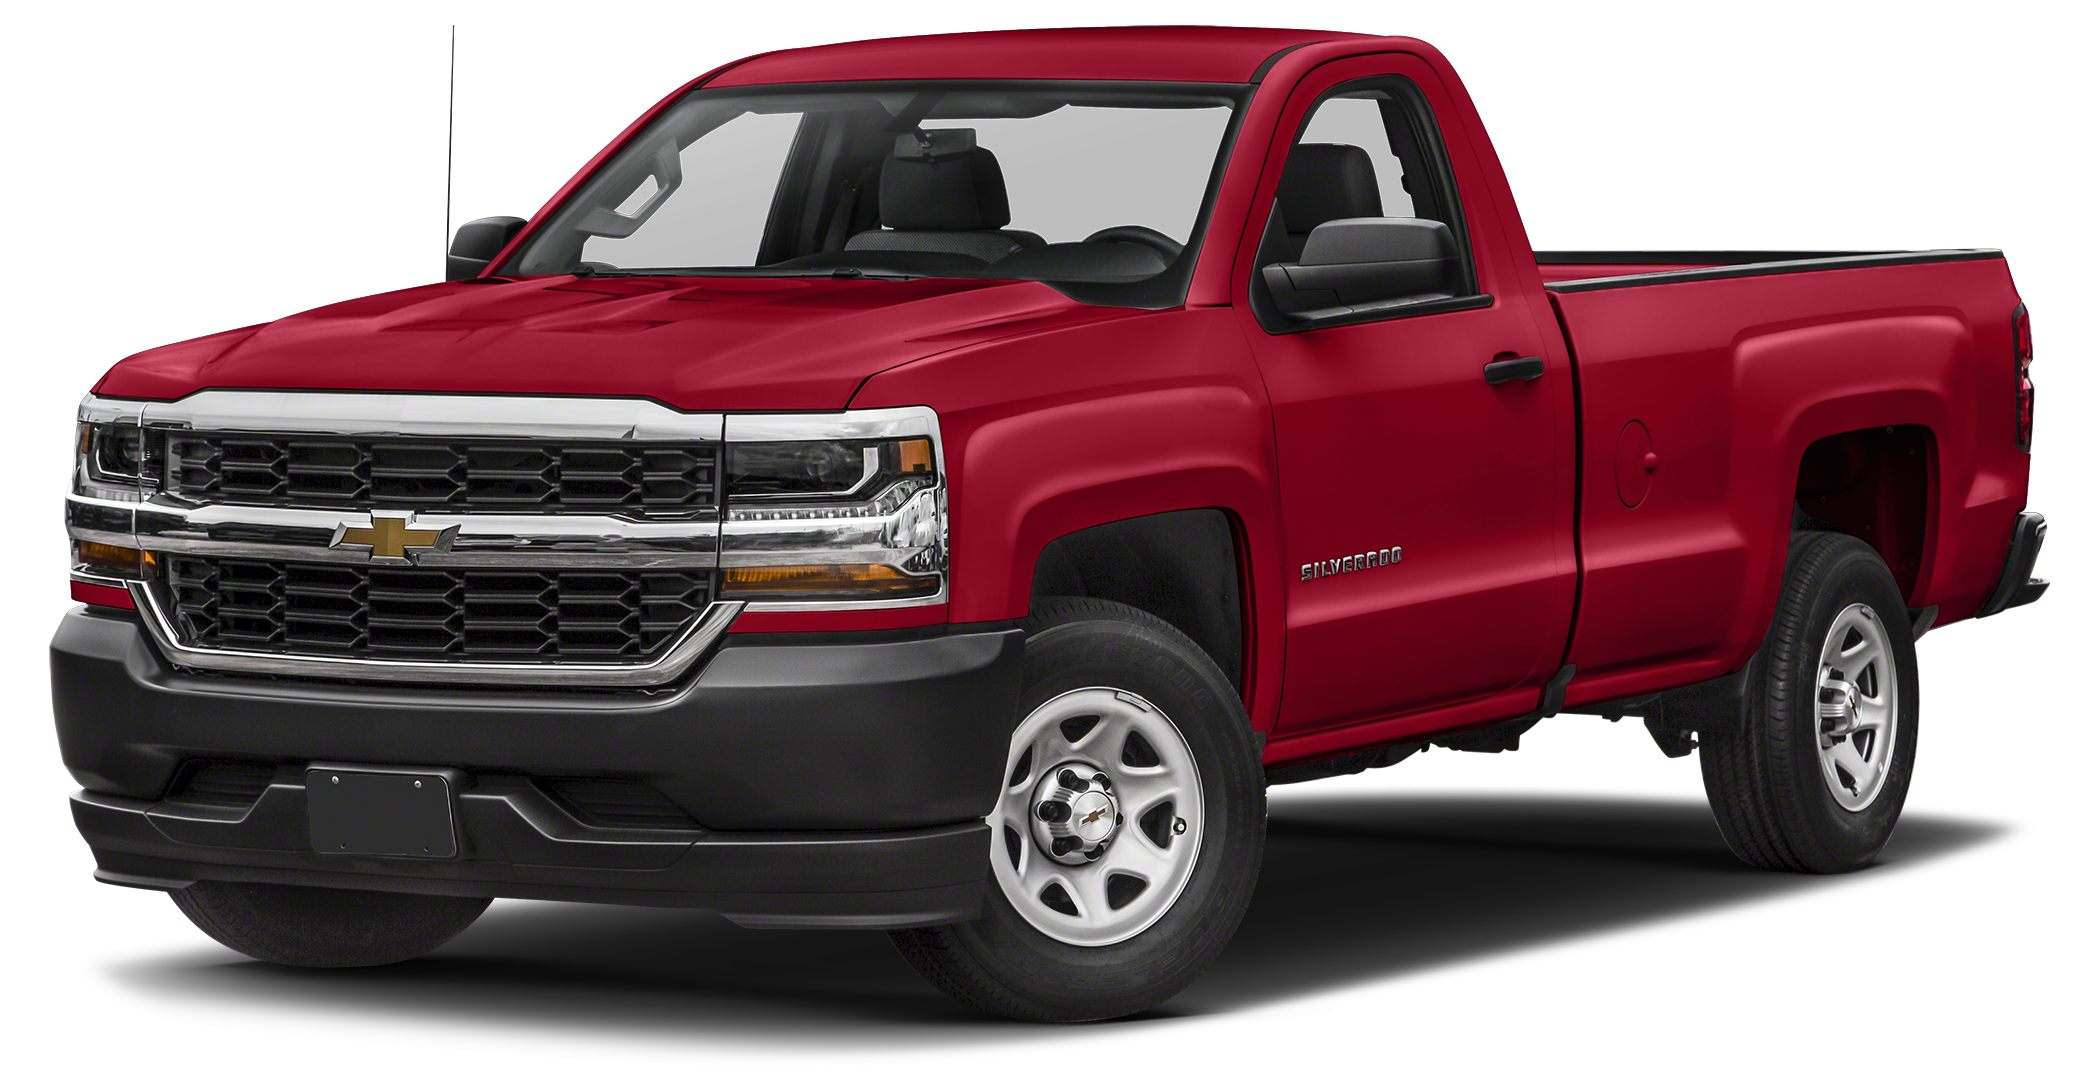 2017 Chevrolet Silverado 1500  Miles 0Color Red Hot Stock 176677 VIN 1GCNKNEC0HZ305053